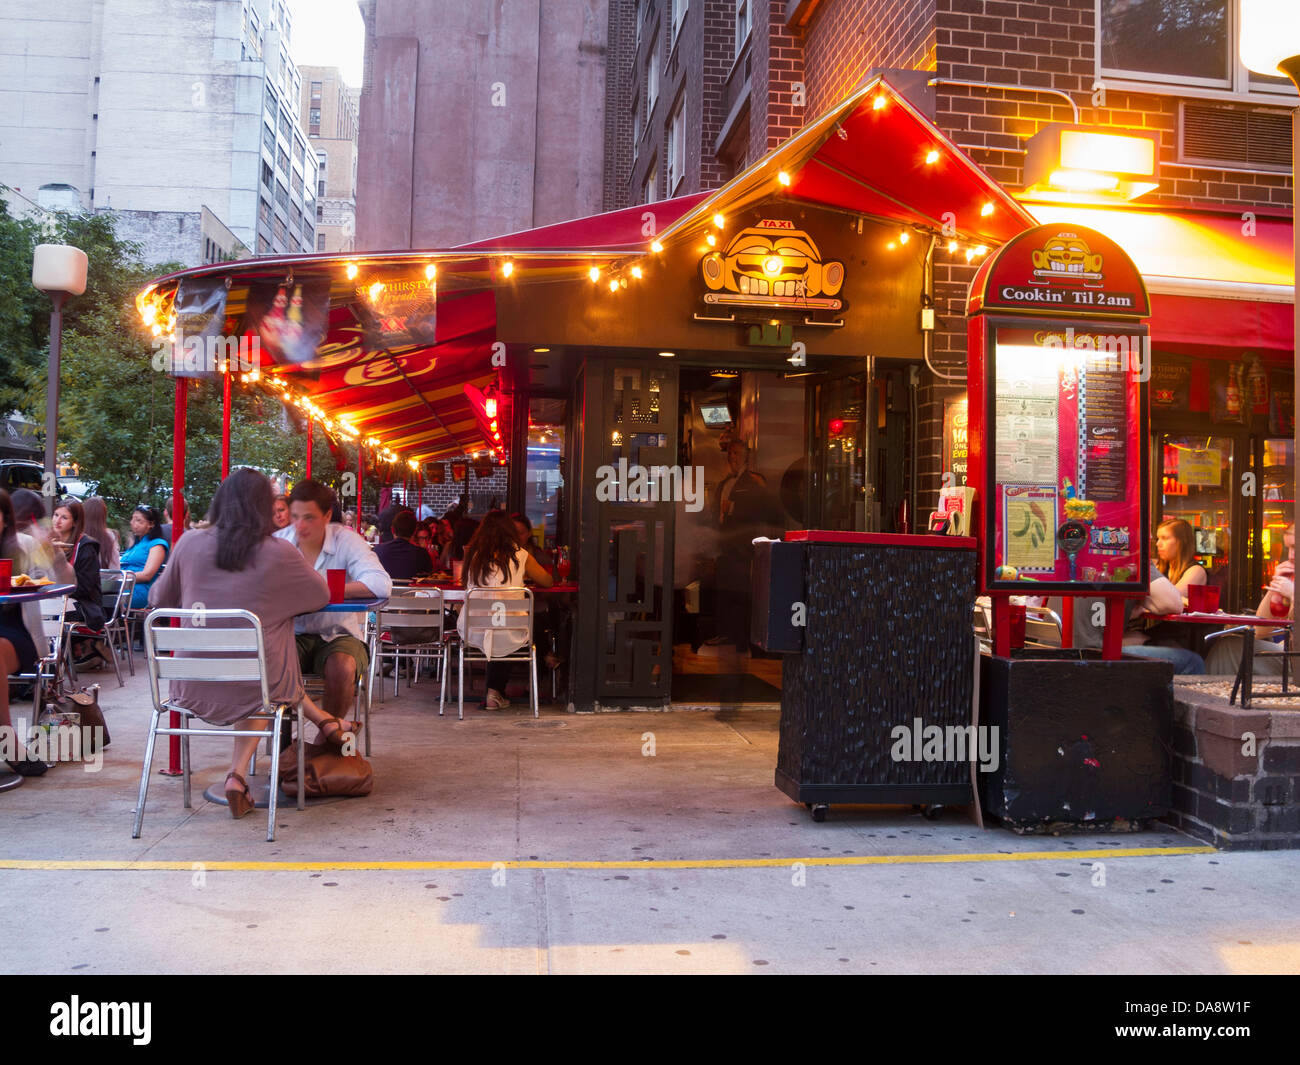 Caliente Mexican Restaurant, Greenwich Village, New York City, U.S.A;  People Enjoying Outdoor Dining, Caliente Cab Co. NYC, USA   Stock Photo